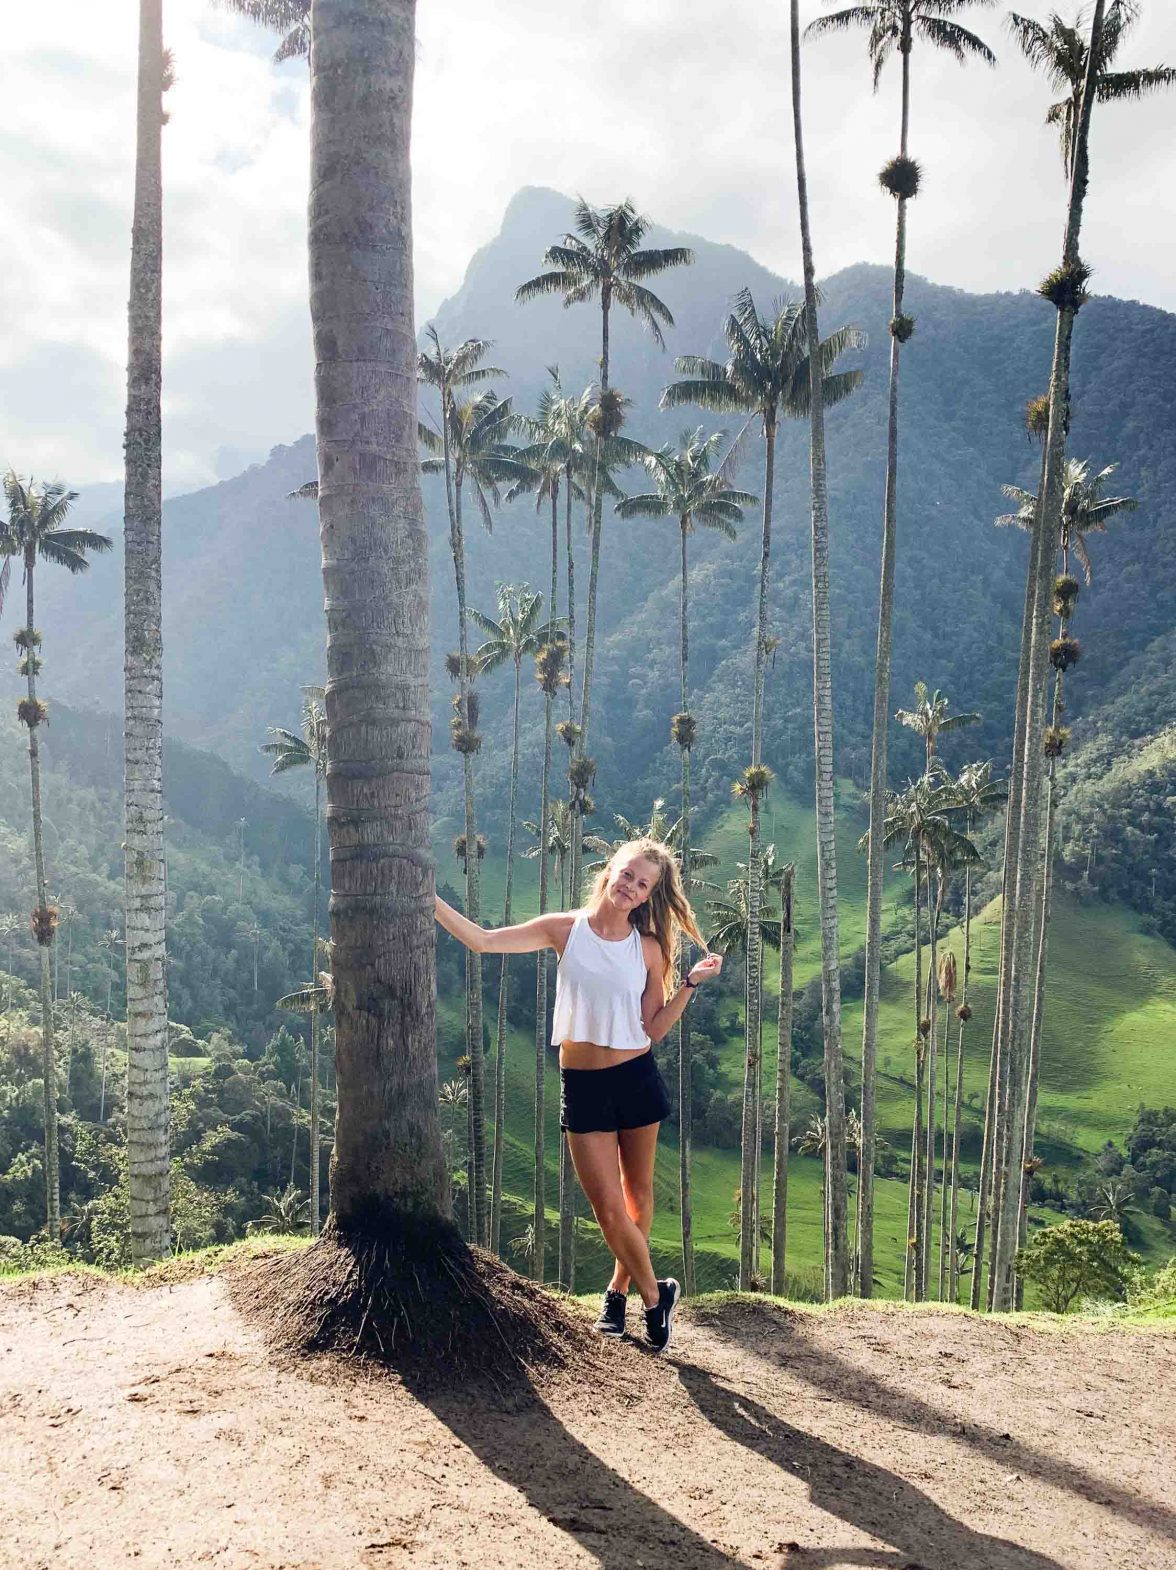 Solo traveler Kellie Paxian in the Cocora Valley in Colombia.